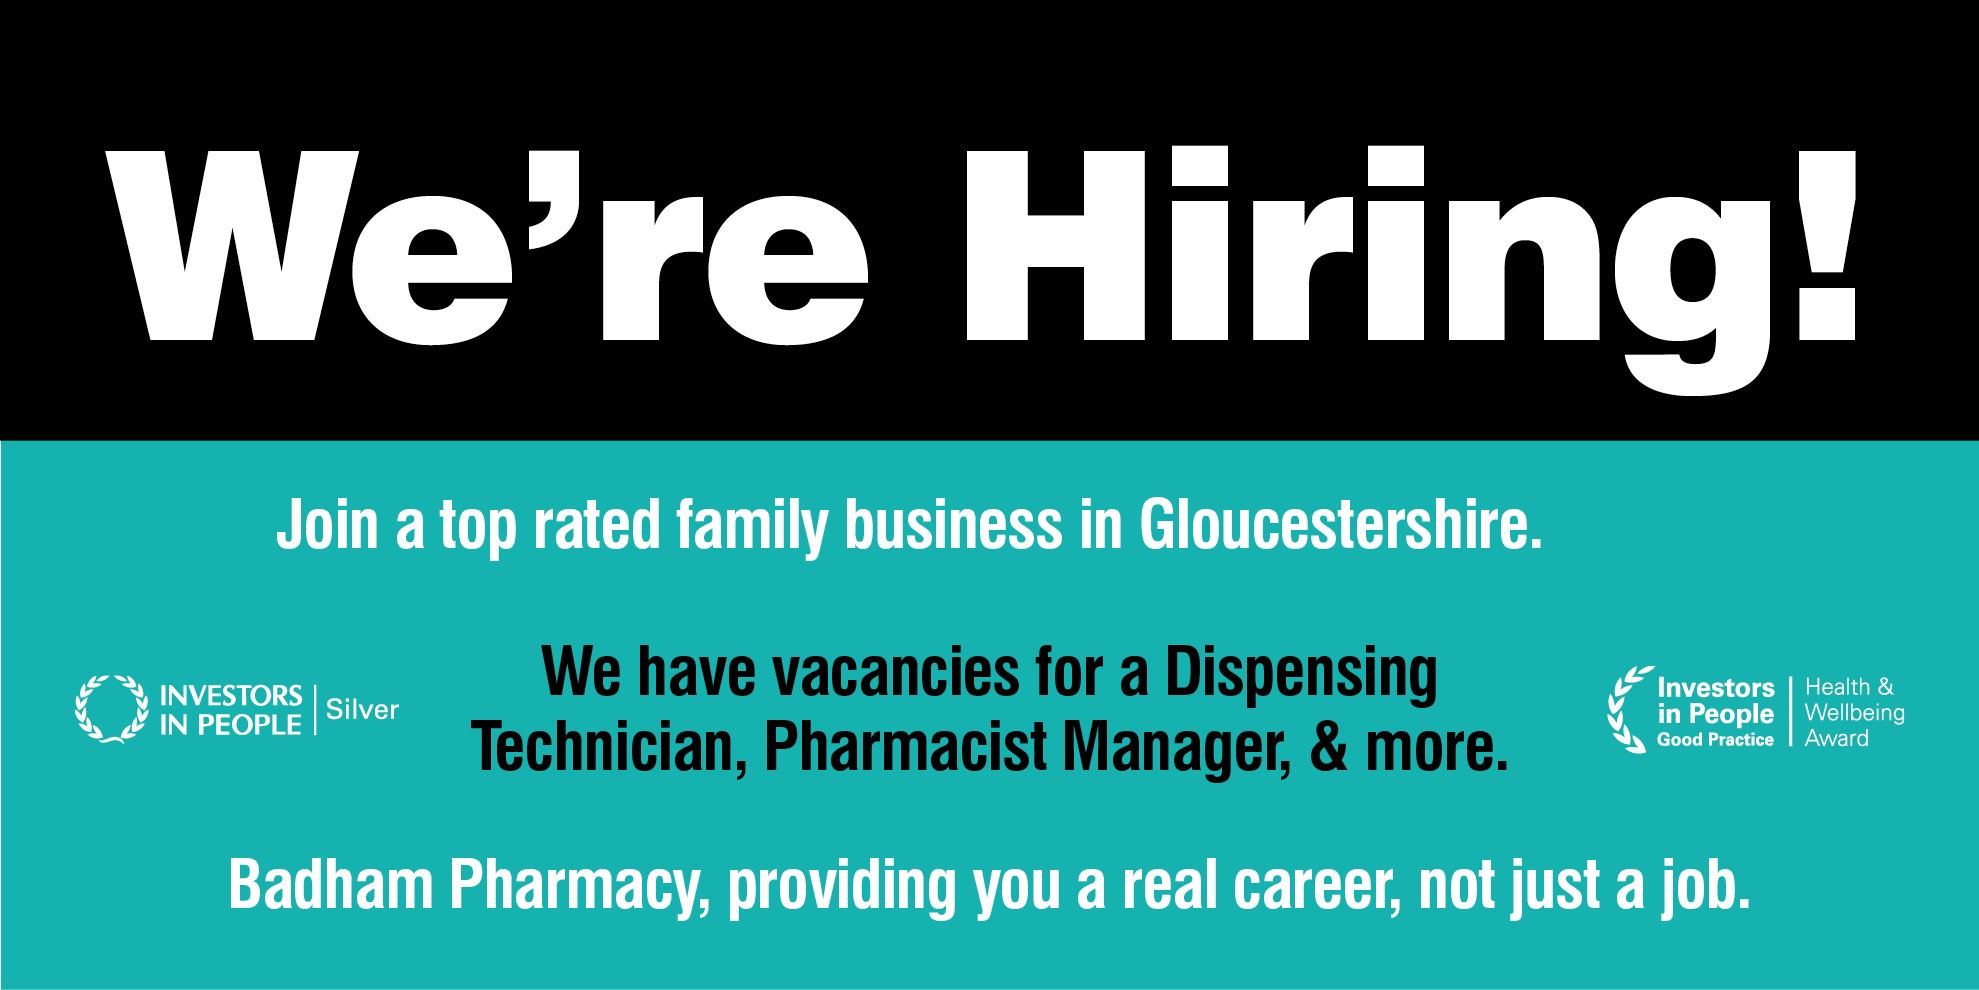 We're Hiring! Join a top rated family business in Gloucestershire. View current job vacancies…